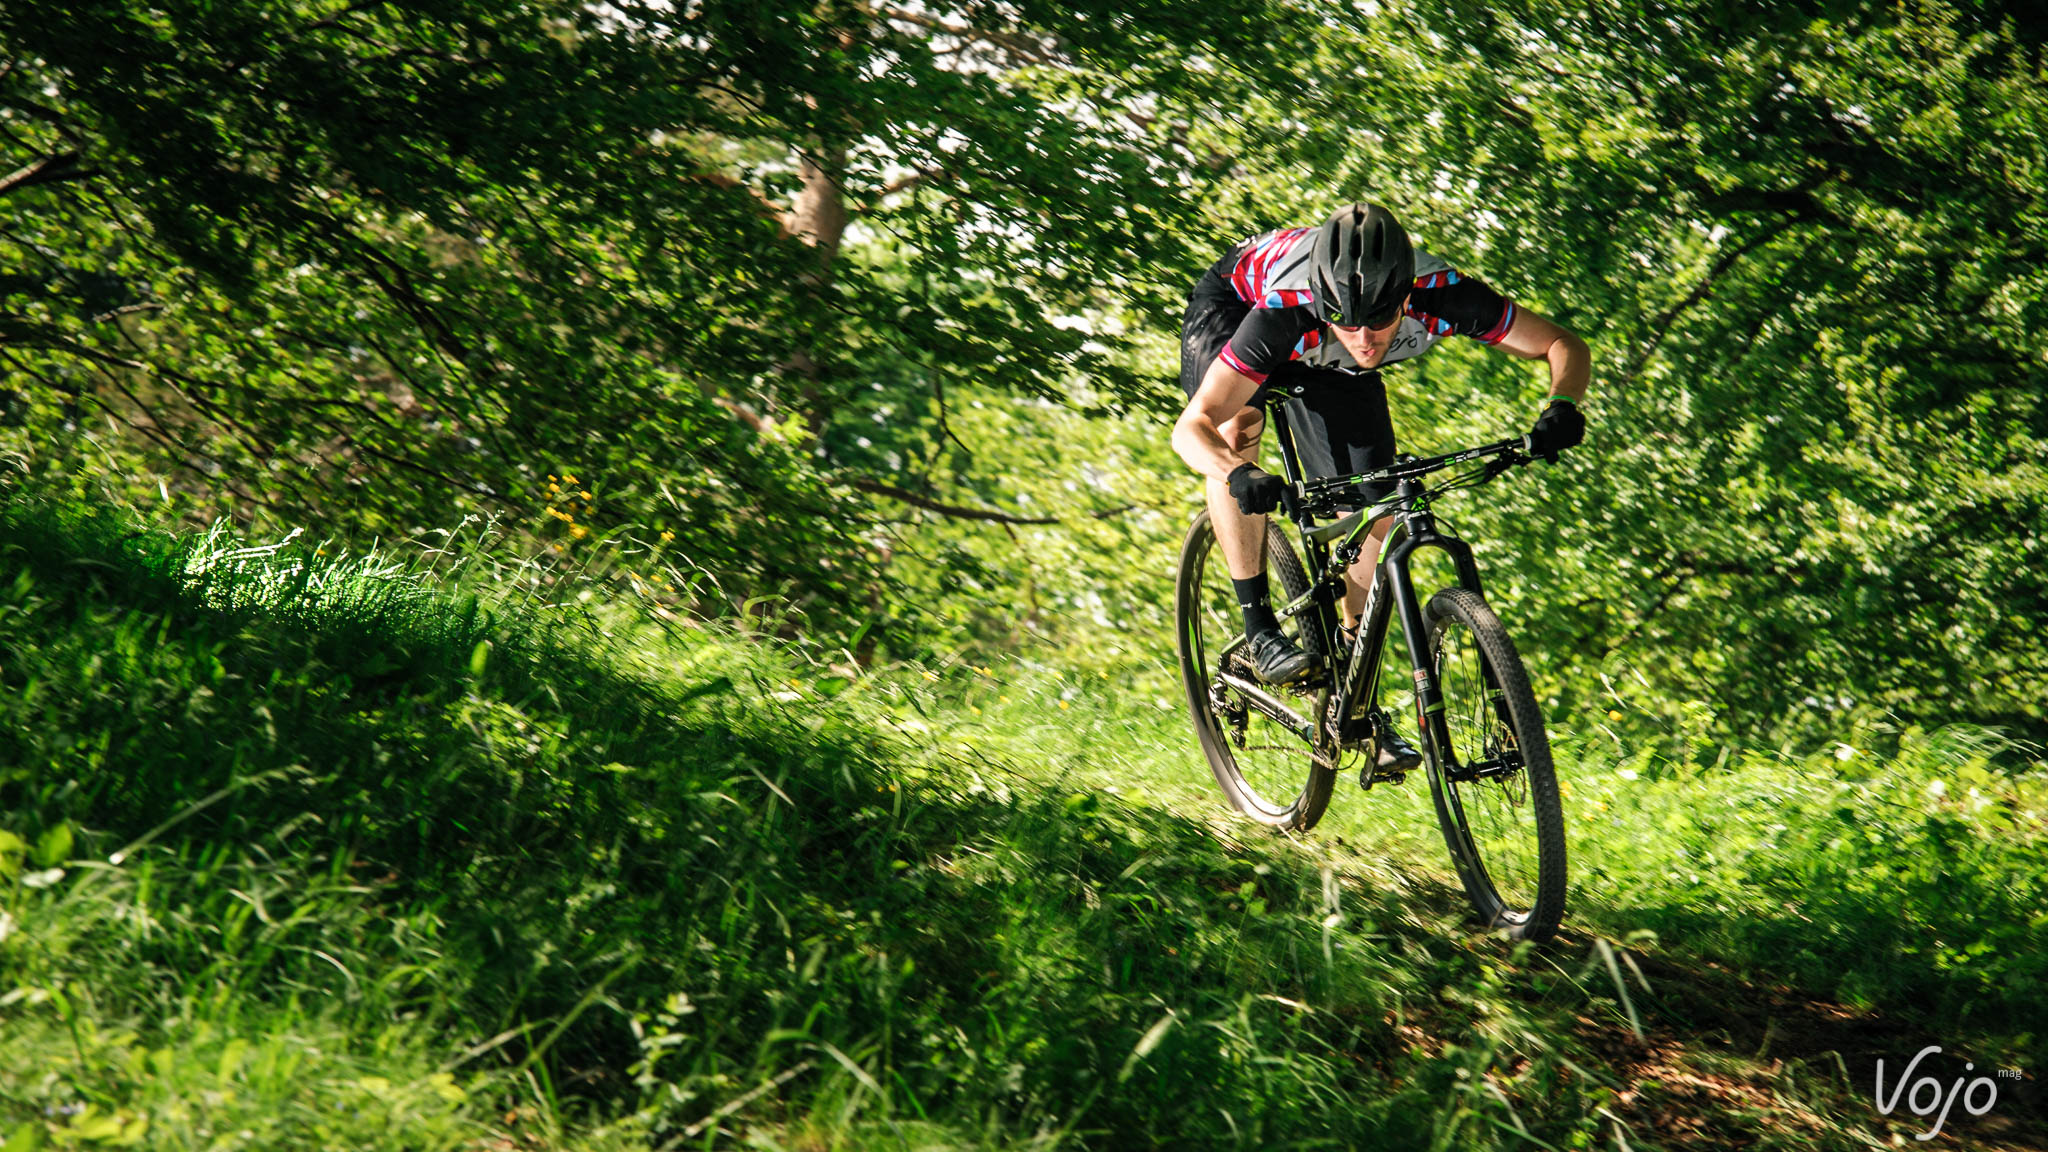 Merida_96_nouveaute_2016_Action_test_Copyright_MTBCult_OBeart_VojoMag-5